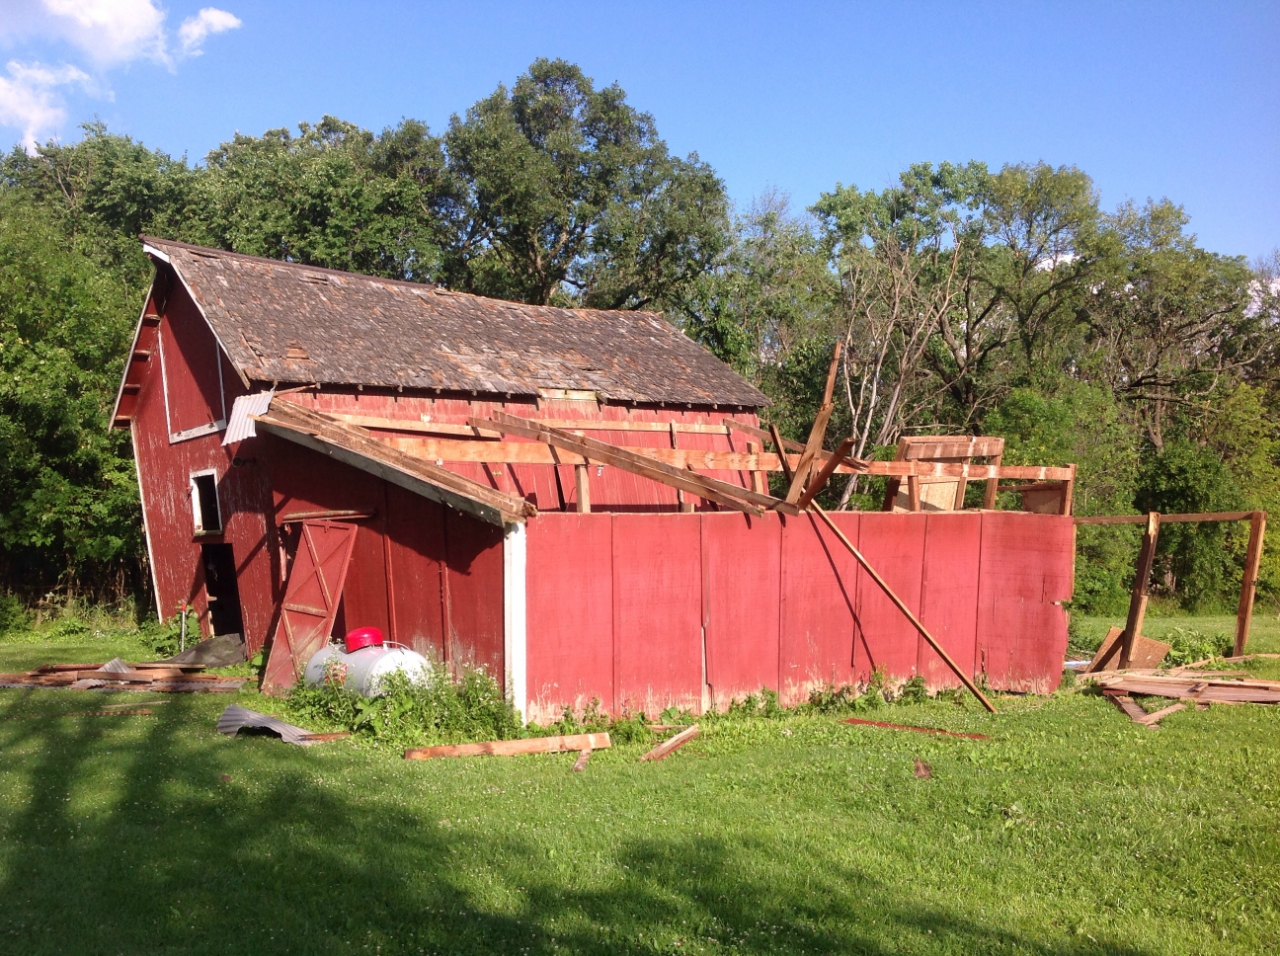 Barn destroyed